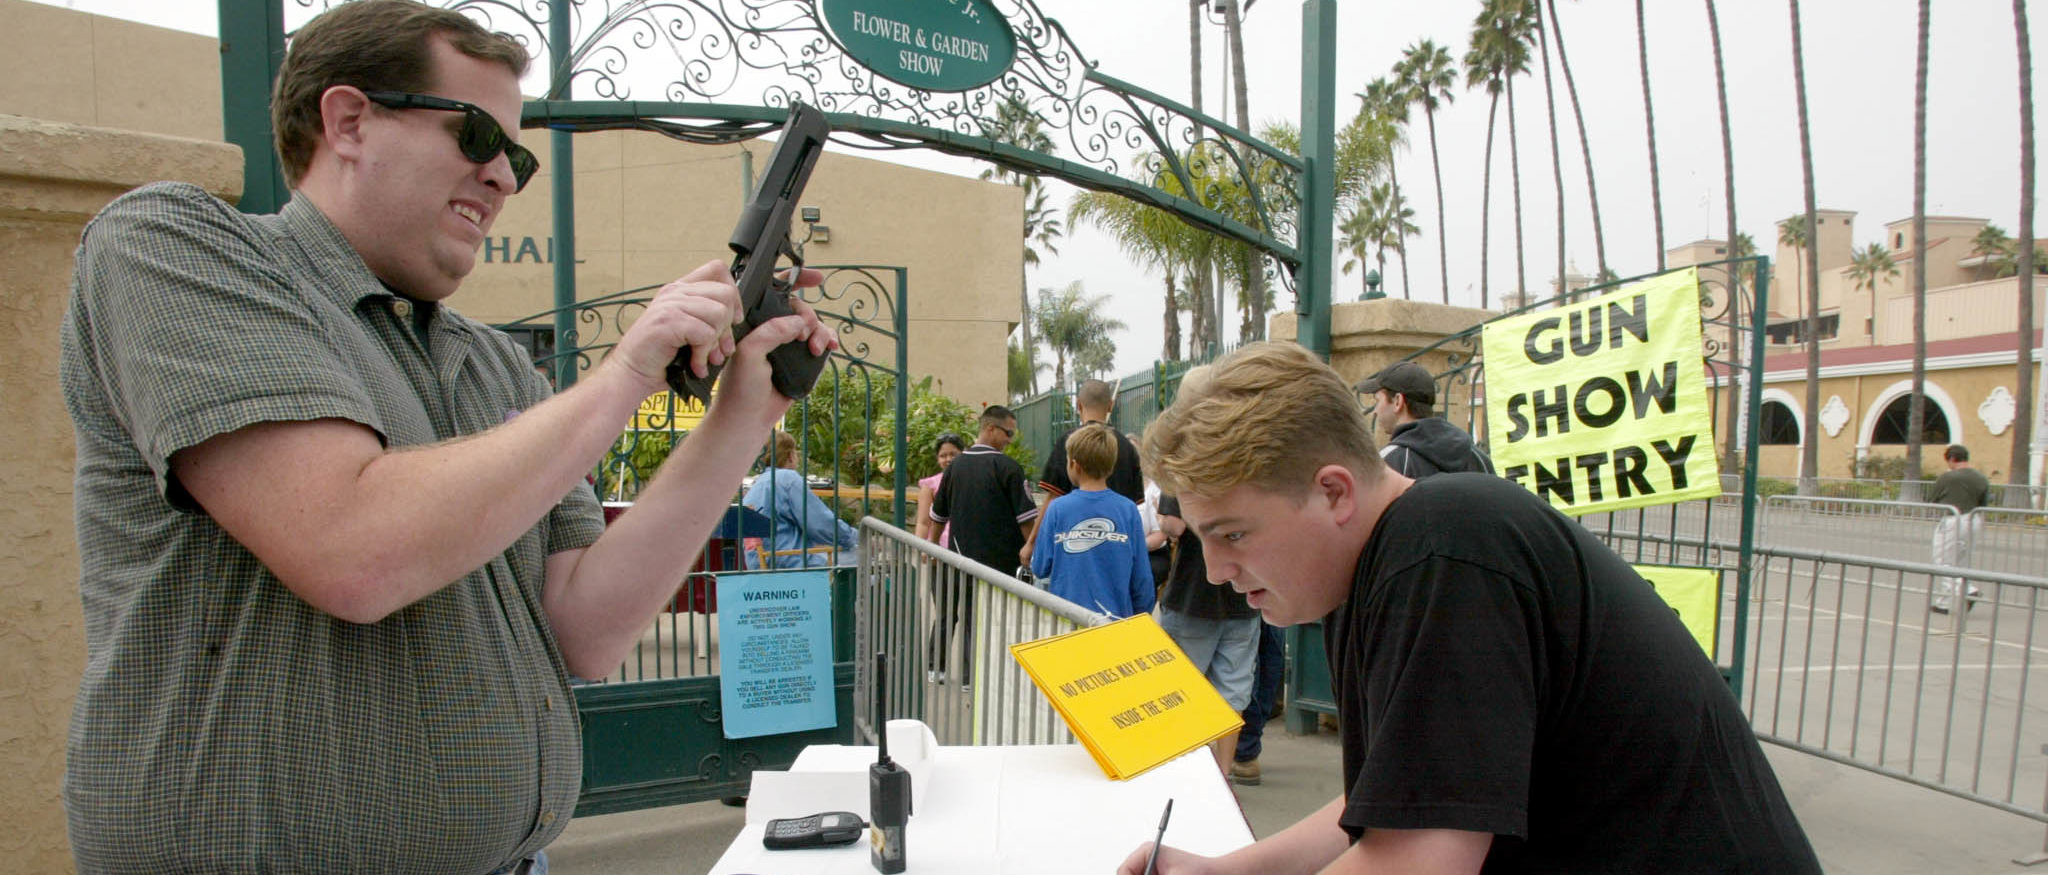 A man checks a handgun at the reception desk of the Crossroads of the West Gun Show in Del Mar, California, 20 October, 2002, where loade guns are not allowed. The show is being held several times a year in dozens of cities in the West Coast and gathers a variety of customers from law enforcement agents, military personnel, hunters and civilians to purchase weapons, ammunition, collectible items, antiques and memorabilia. (Photo by HECTOR MATA/AFP/Getty Images)